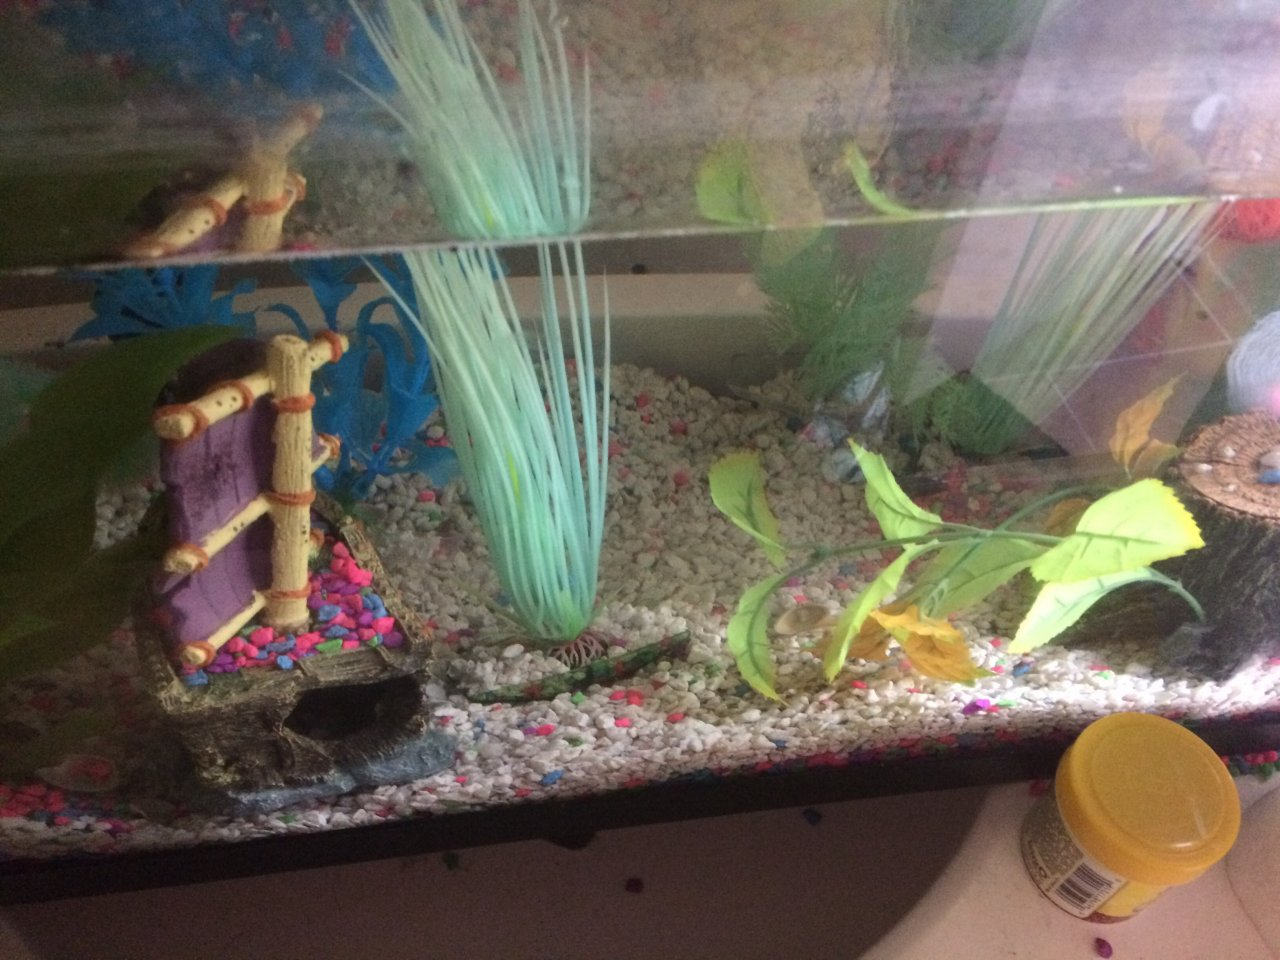 Fish in tank swimming - The Tank Is Cycled And I Use Api Live Bacteria To Keep It From Spikin Amonia Or Nitrites Can Somebody Tell Me If This Is Normal Thank You